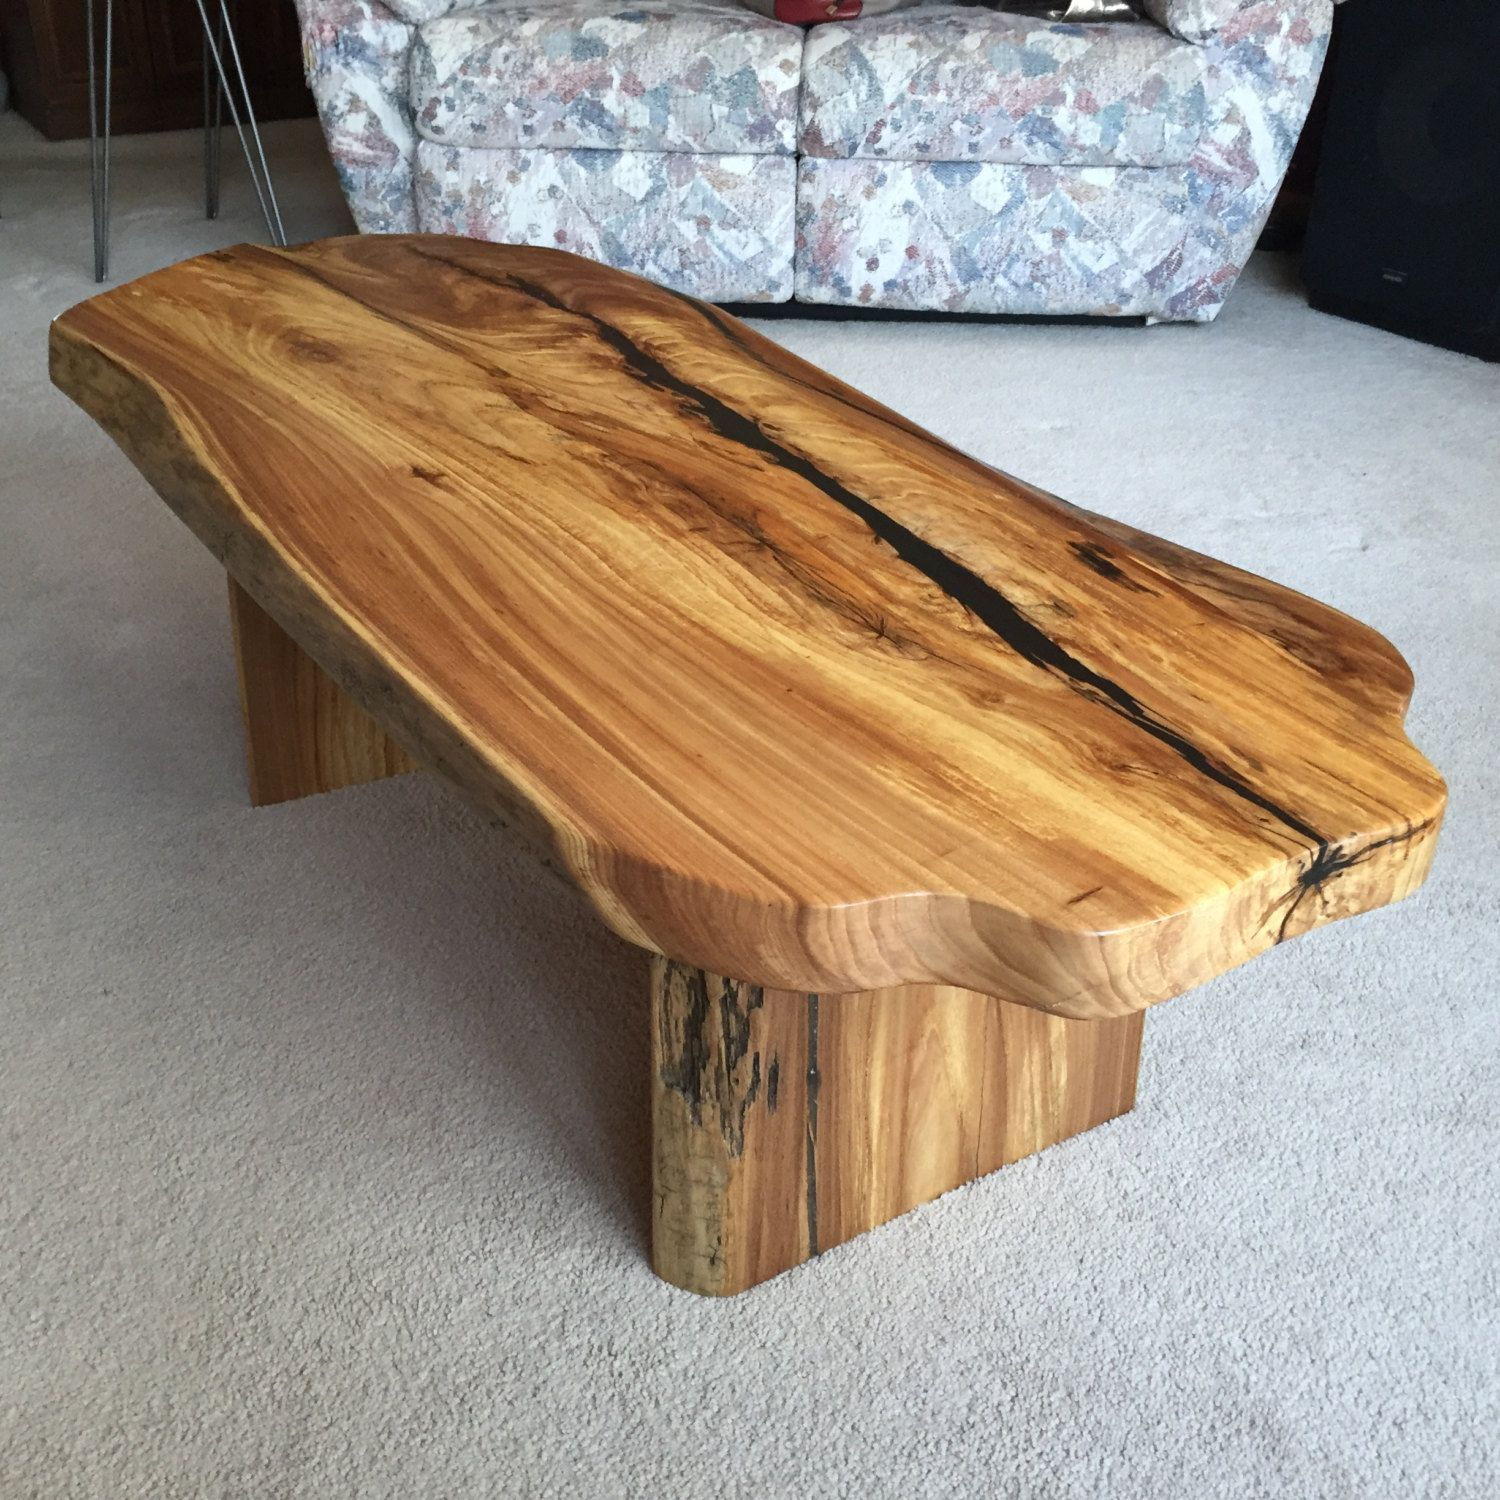 Vintage Industrial Live Edge Walnut Slab Coffee Table: Unique Live Edge Coffee Table With Live Edge Wood Slab